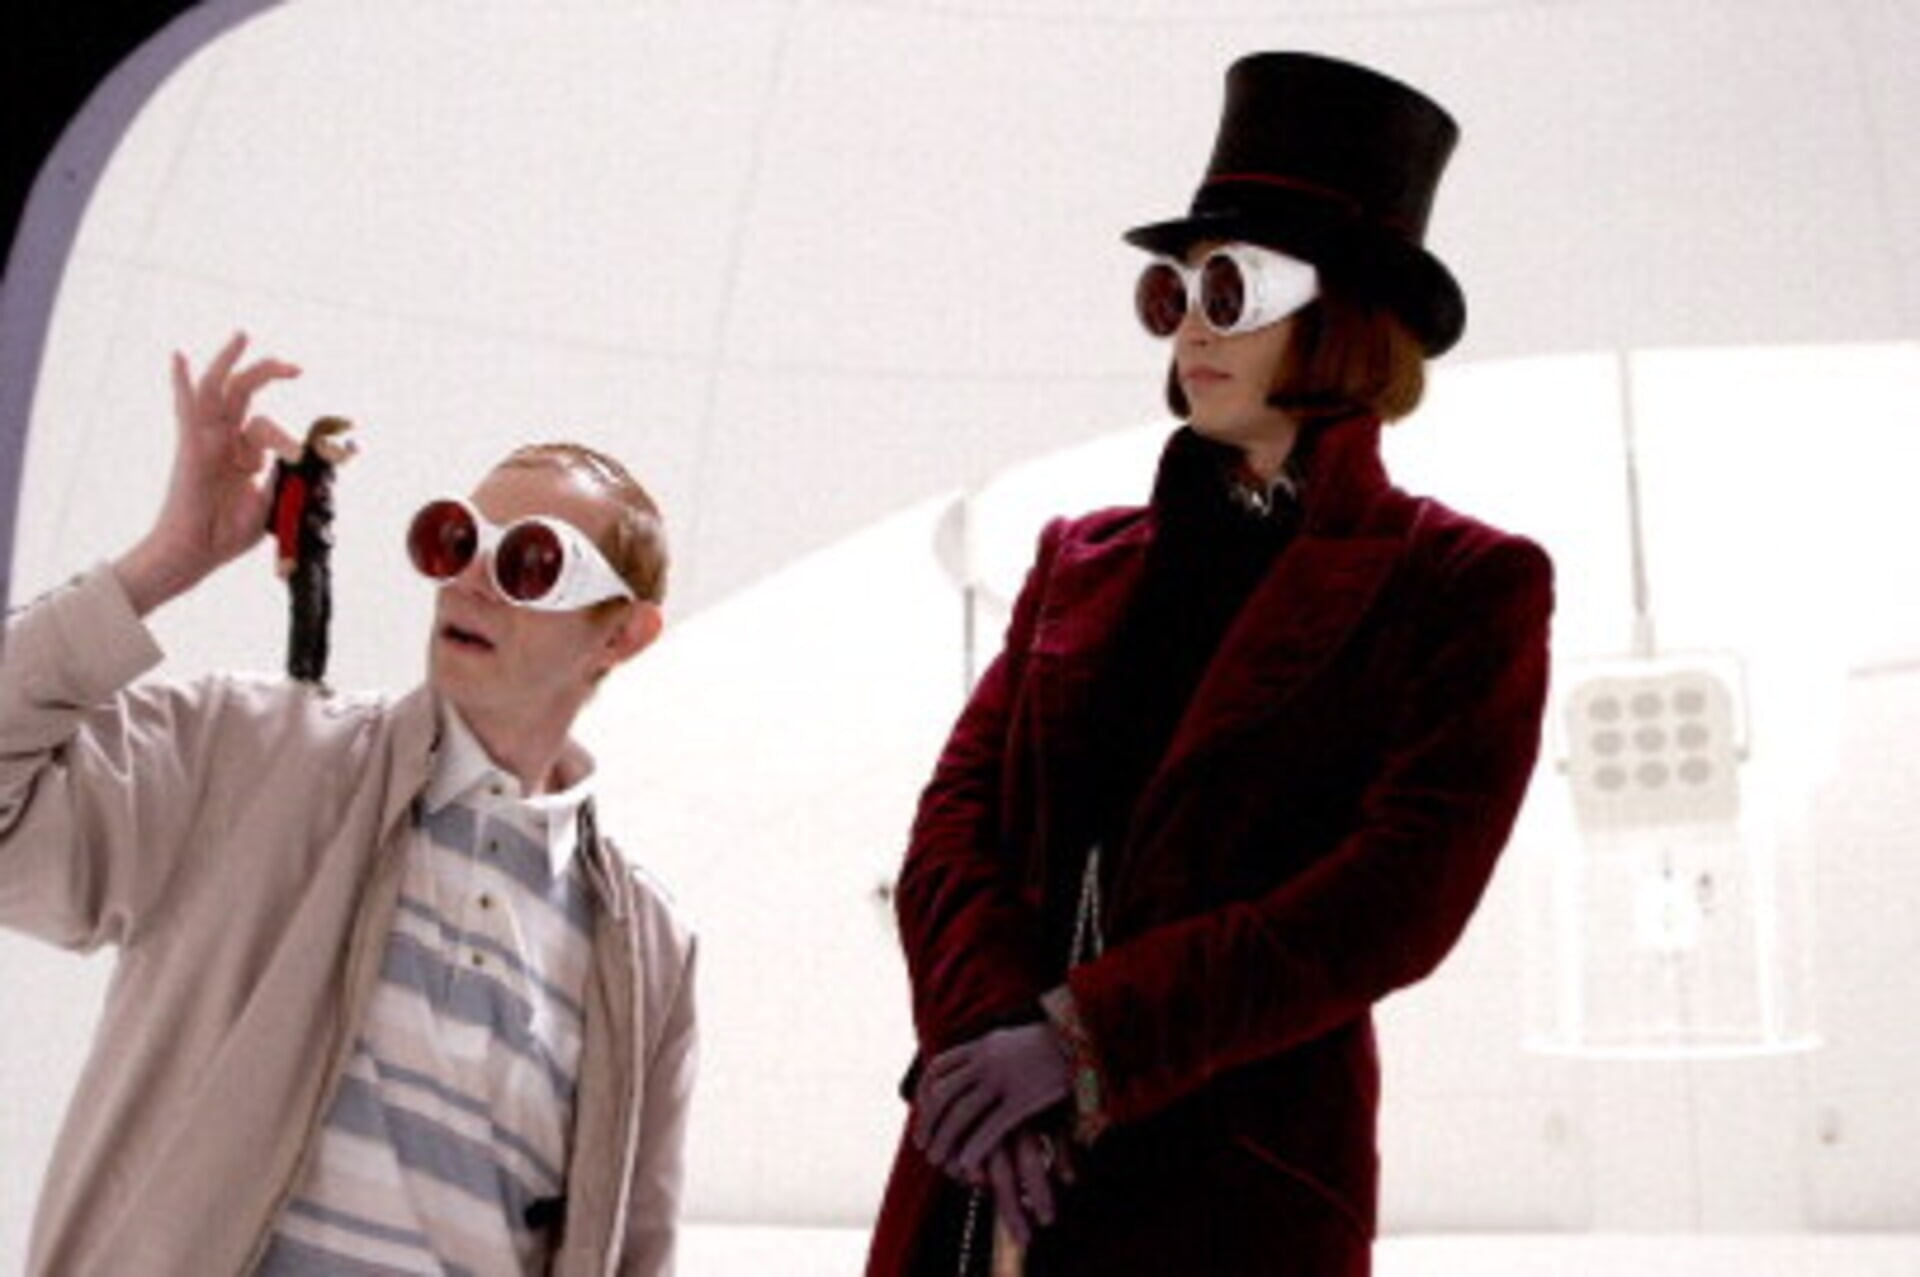 Charlie and the Chocolate Factory - Image 13